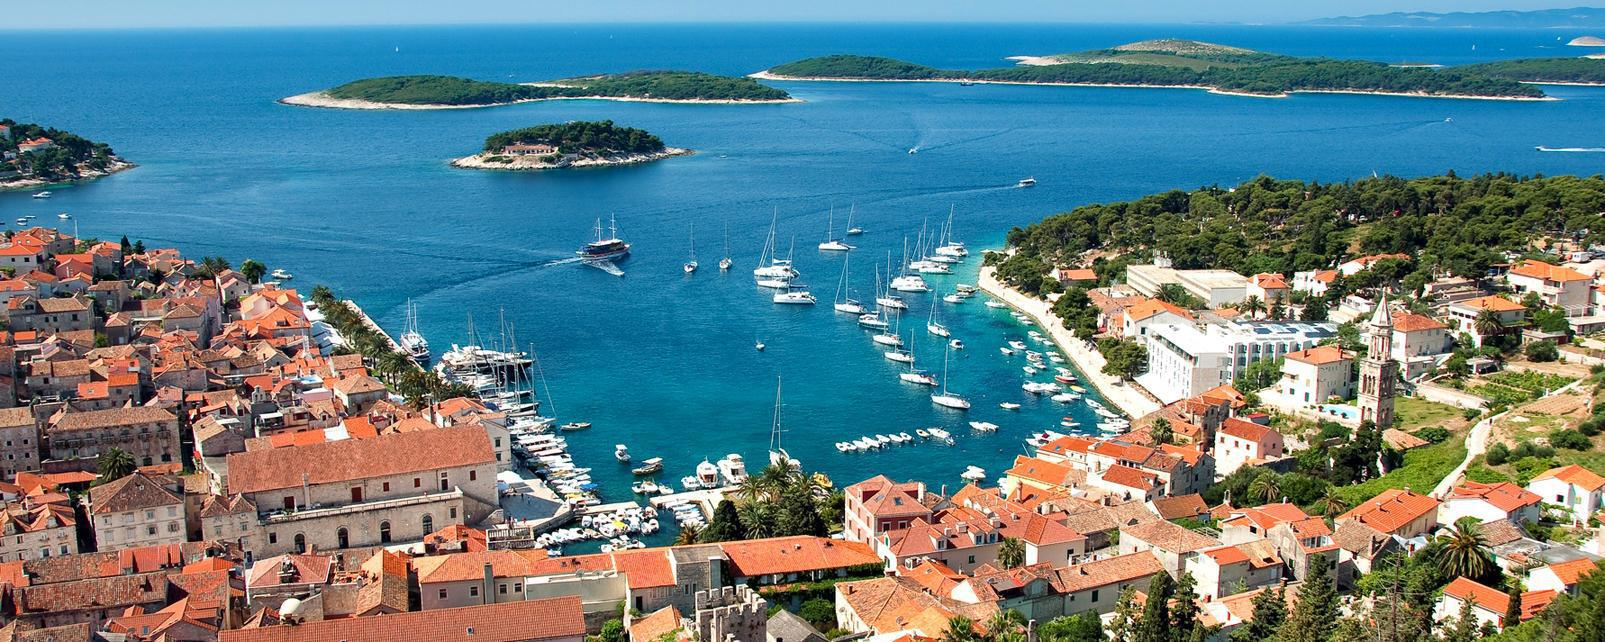 Hvar, Croatia - Monterrasol small group tours to Hvar, Croatia. Travel agency offers small group car tours to see Hvar in Croatia. Order small group tour to Hvar with departure date on request.